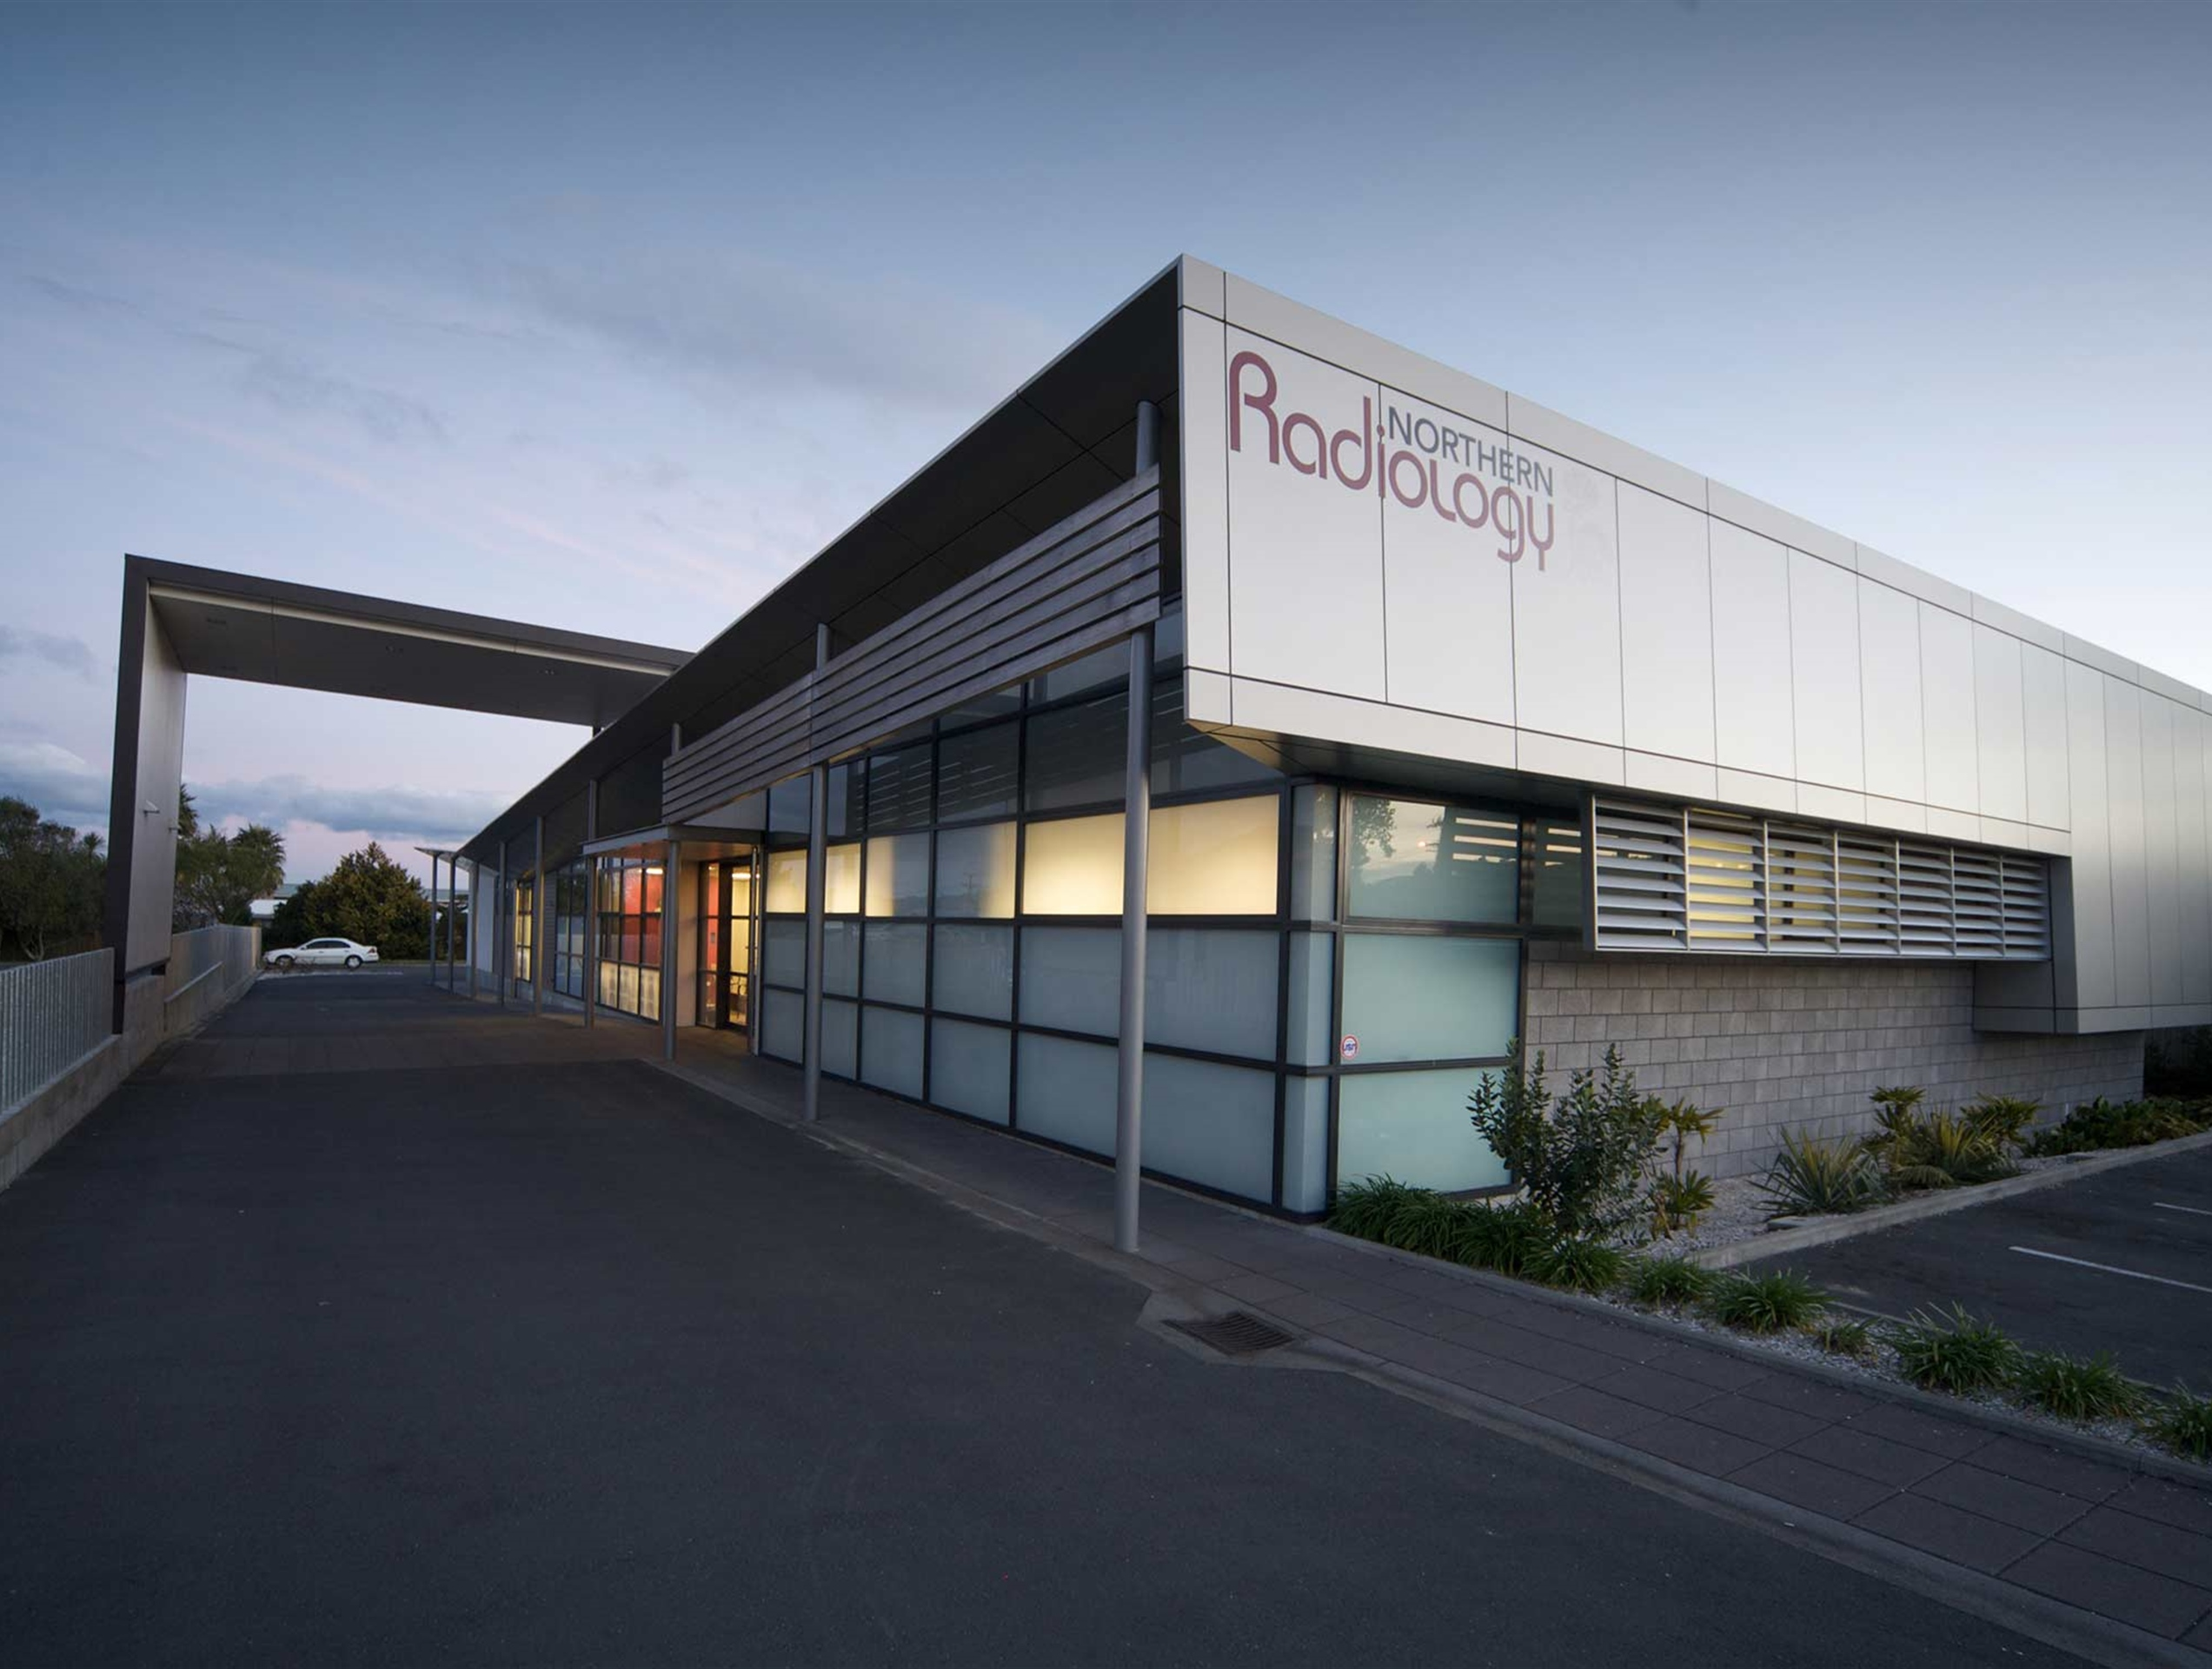 Commercial design in Whangarei - Northern radiology